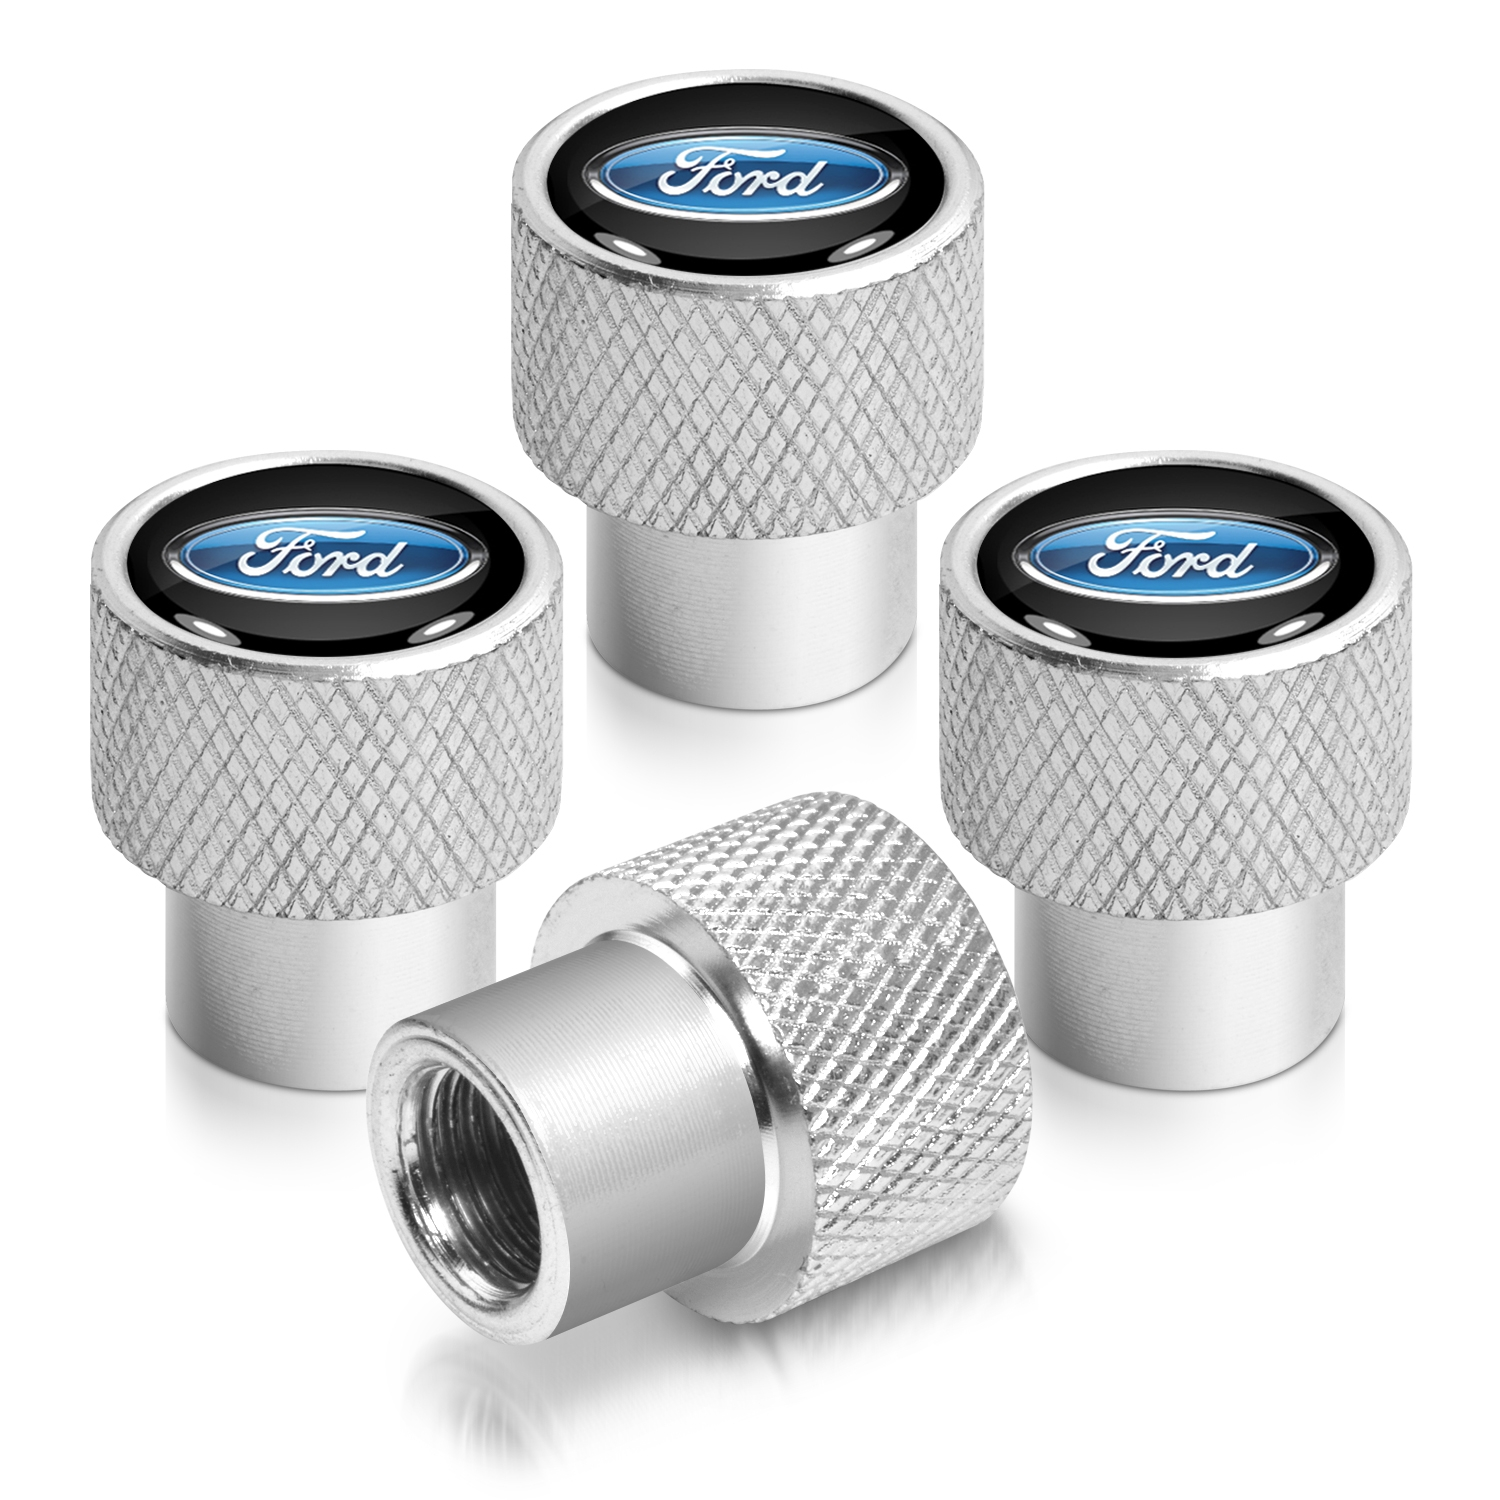 Ford Logo in Black on Silver Chrome Aluminum Tire Valve Stem Caps